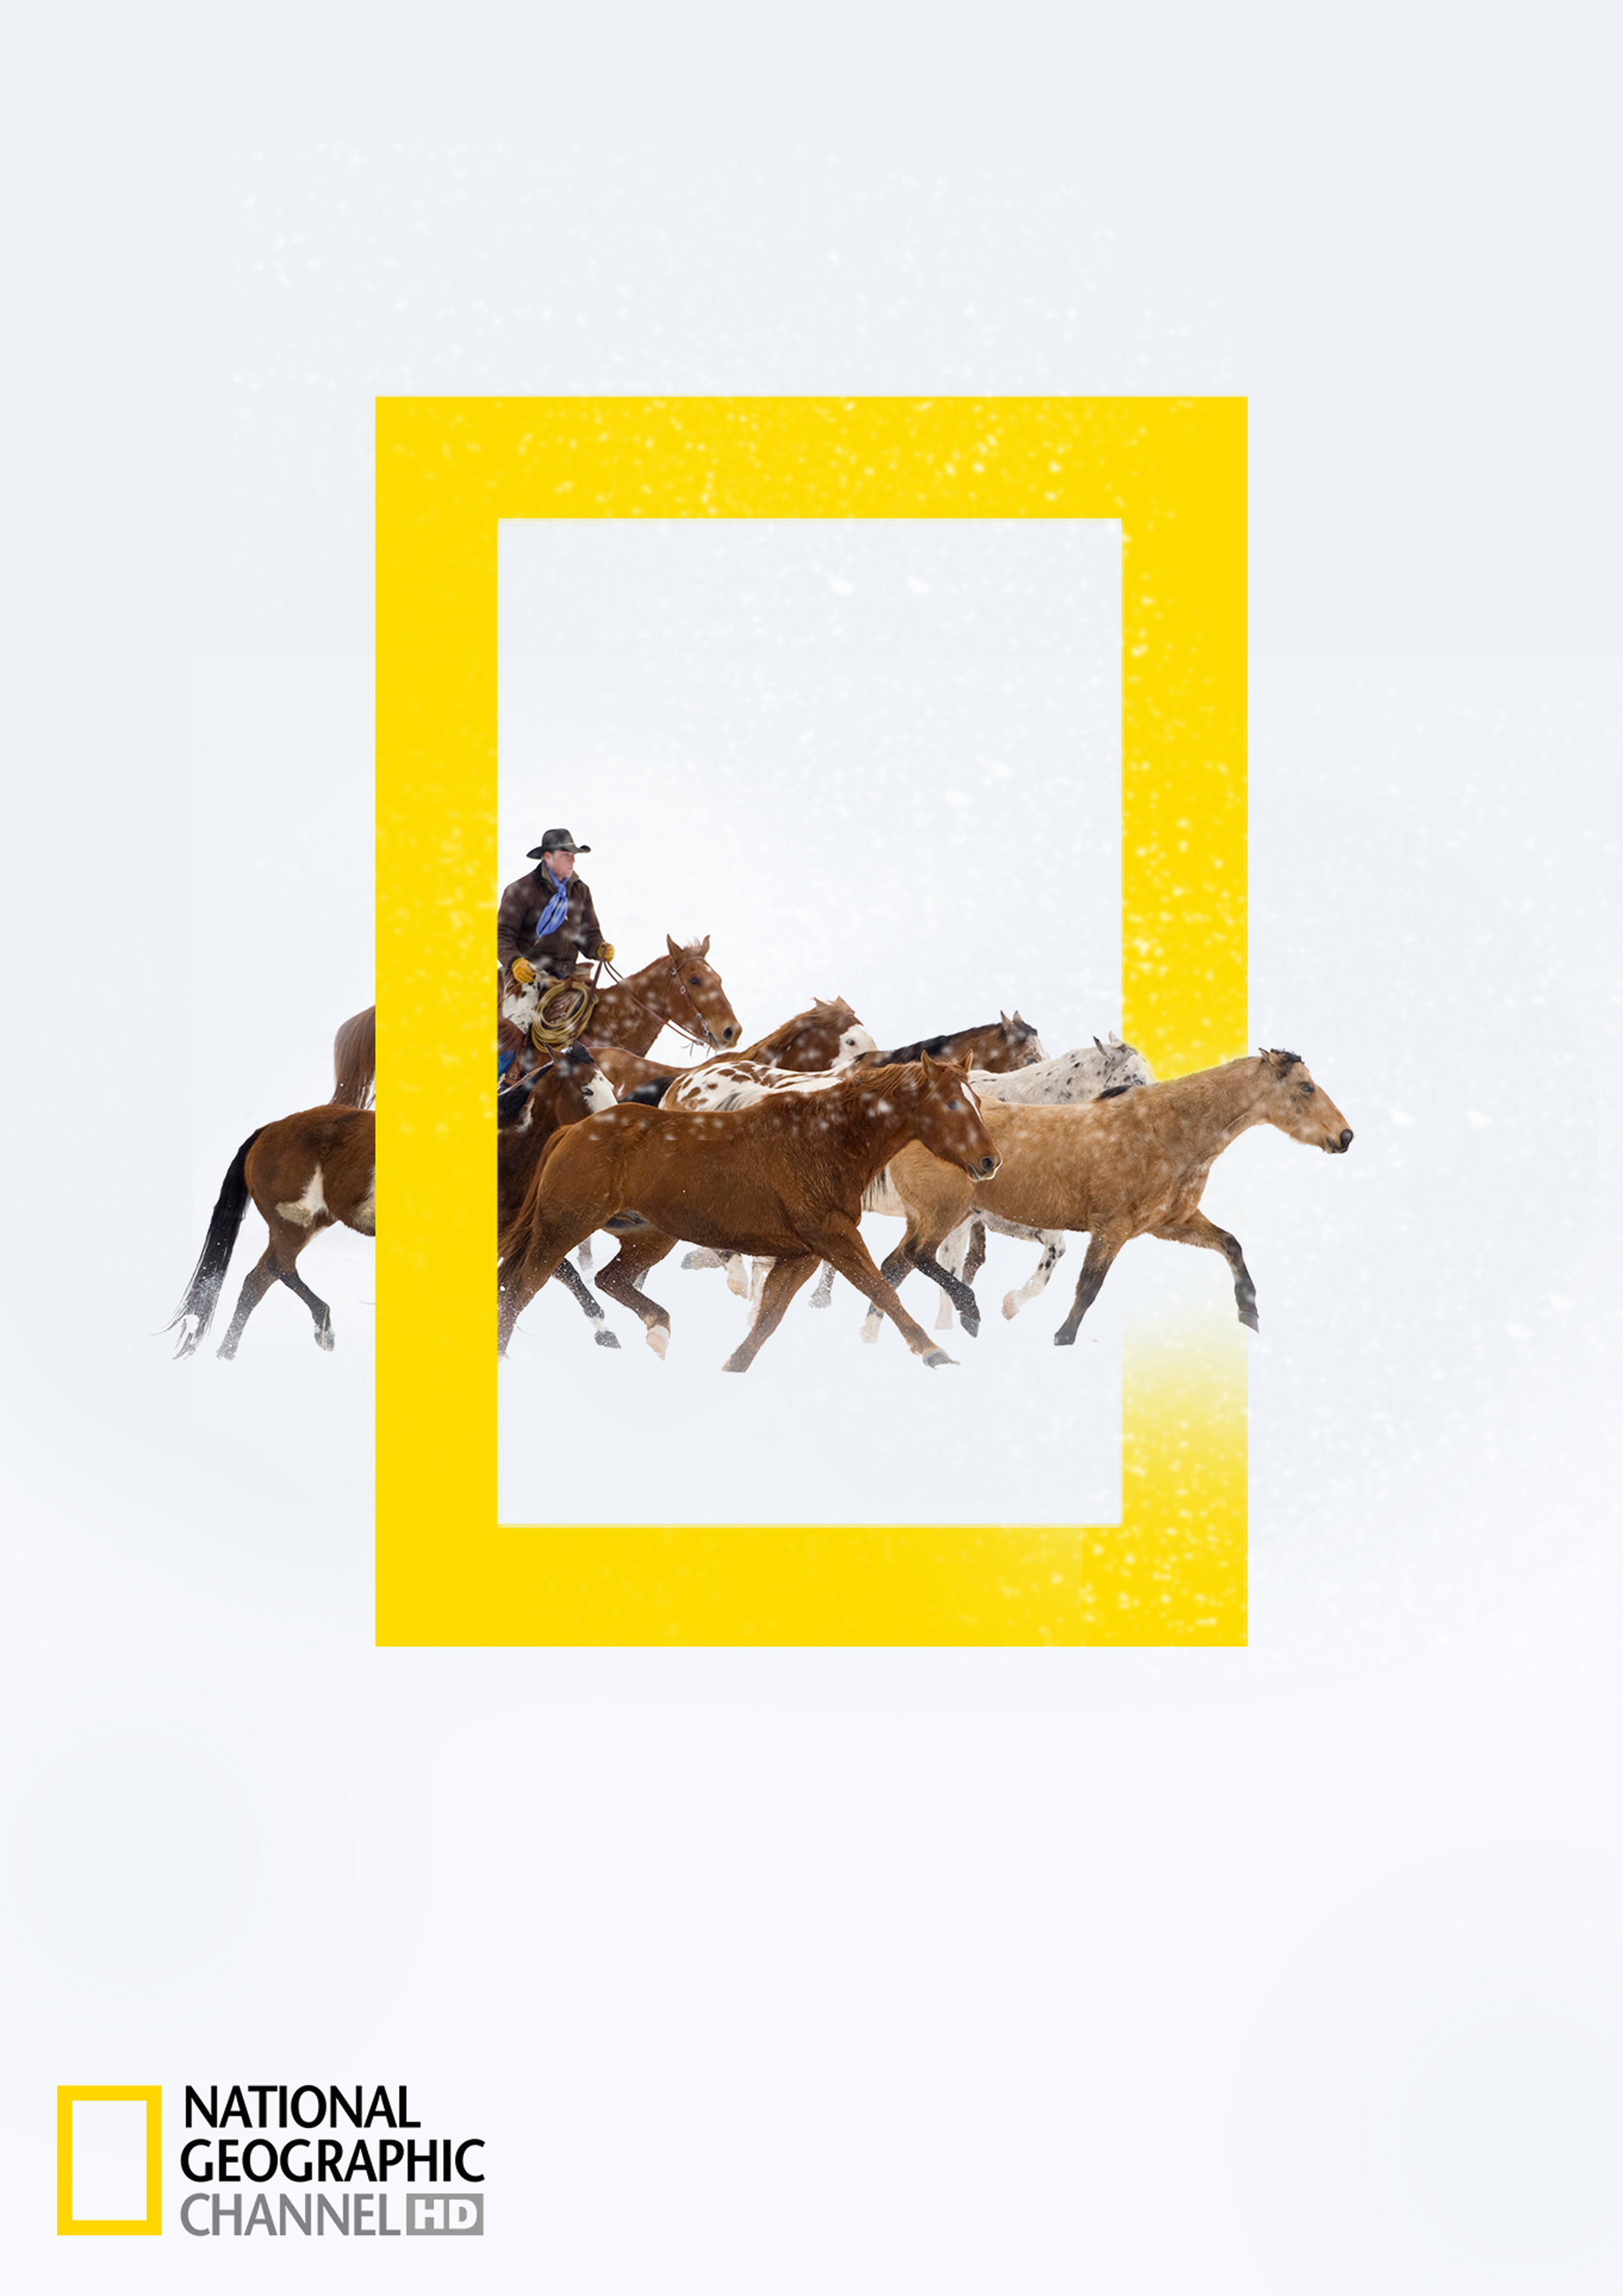 National Geographic Print Advert By ACC Grannot: National Geographic HD  Channel winter programs - Horses | Ads of the World™